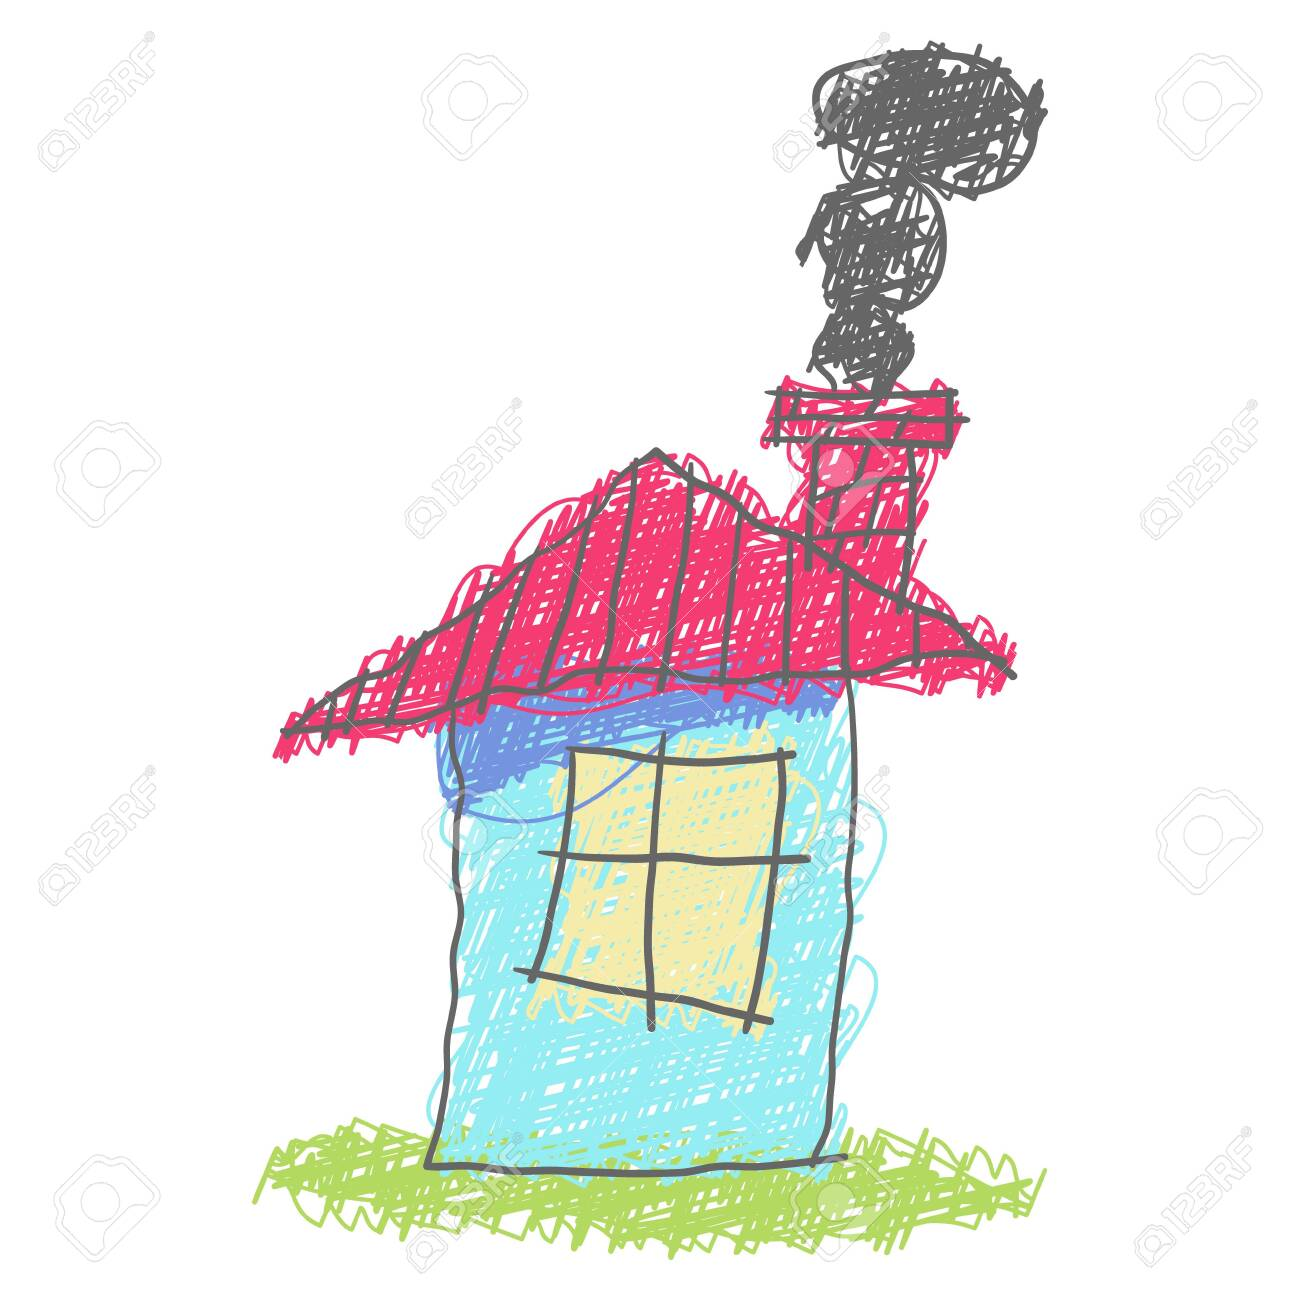 House exterior isolated on white background. Drawings of houses...